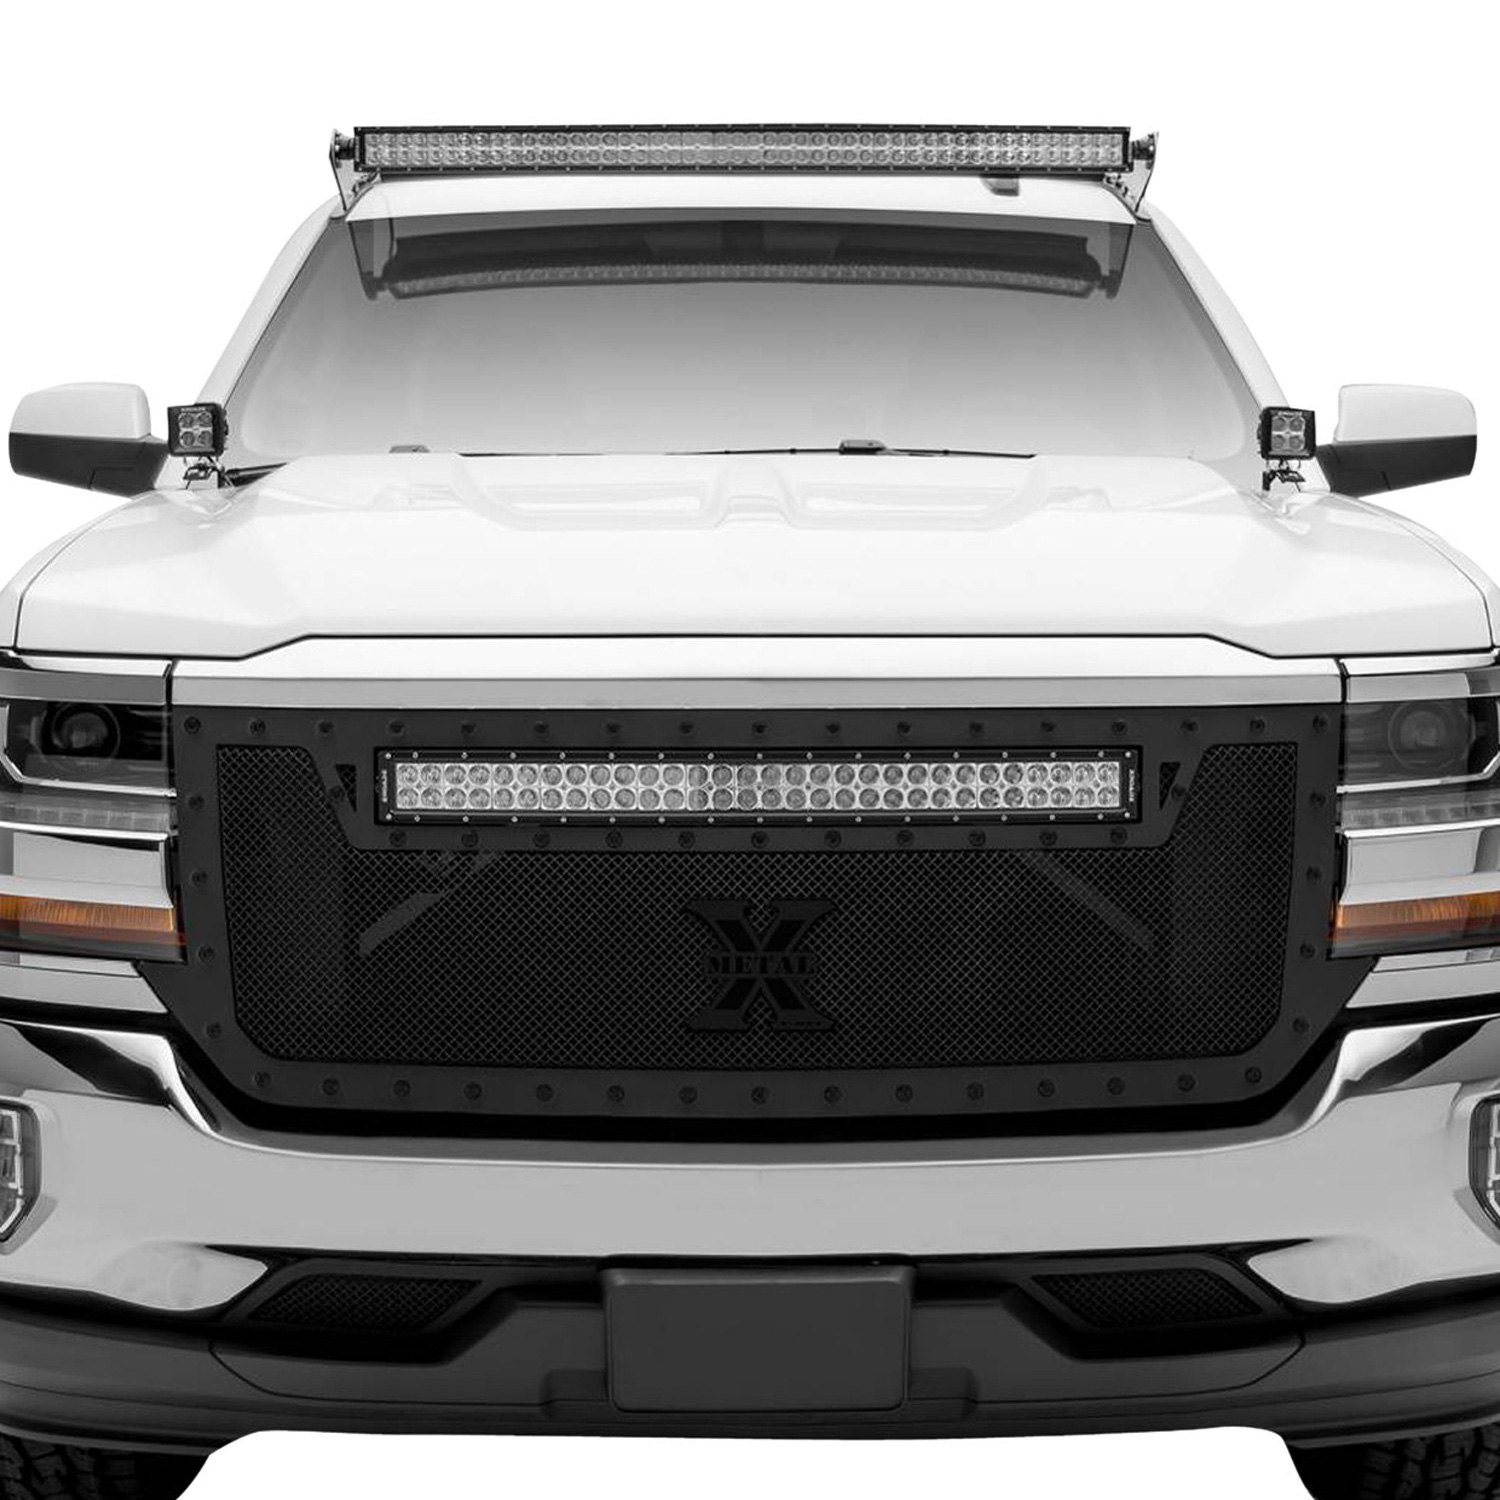 T Rex 1 Pc Stealth Torch Series Black Formed Woven Wire Mesh Main Grille With 1 X 30 Led Light Bar